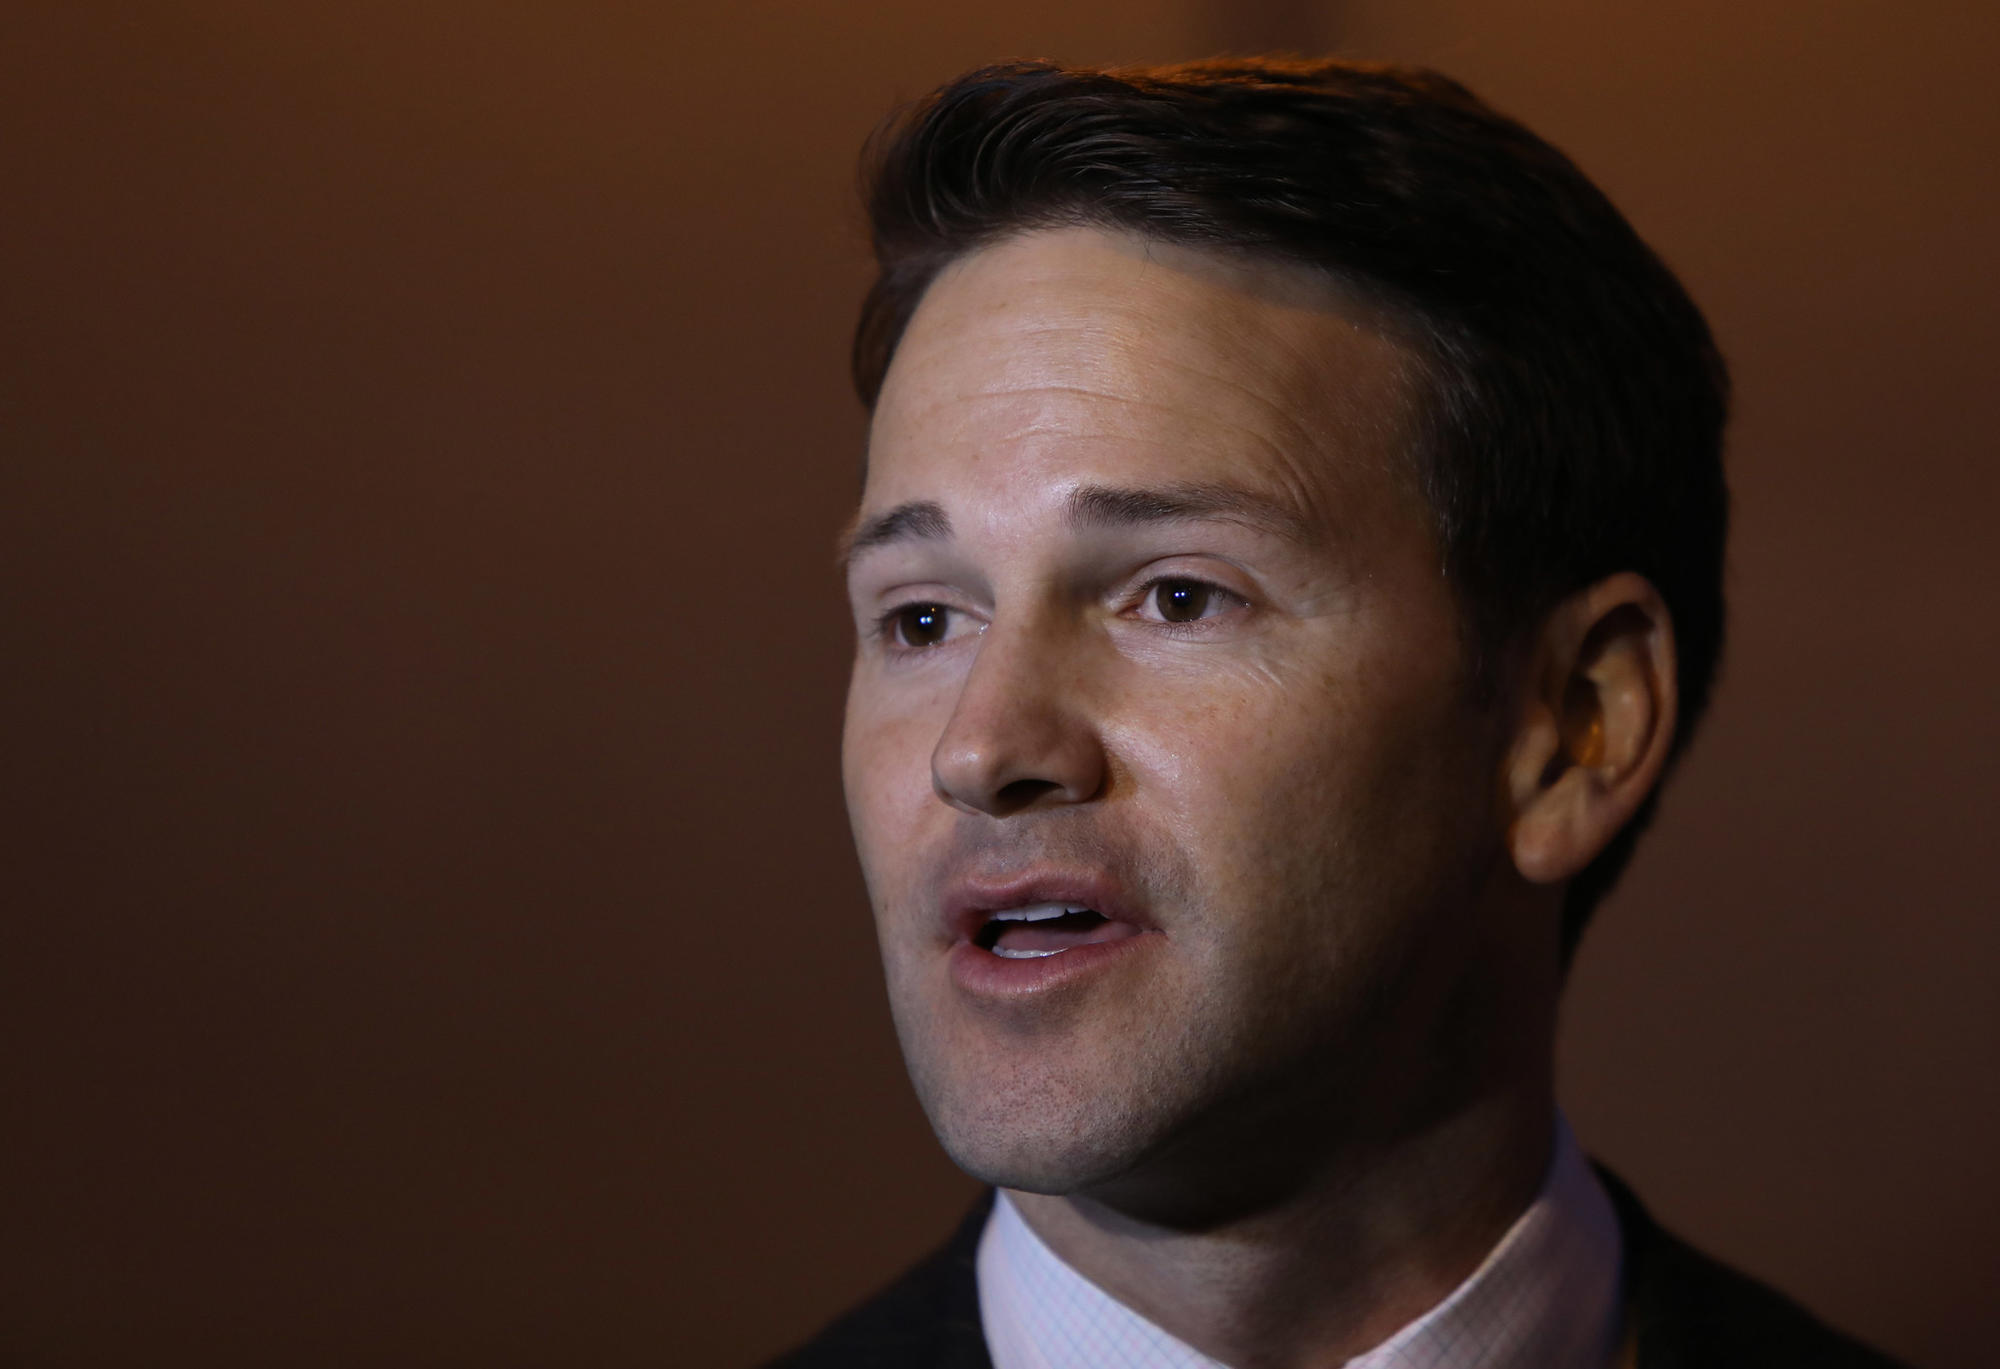 ex rep aaron schock s trial on federal corruption charges moved to